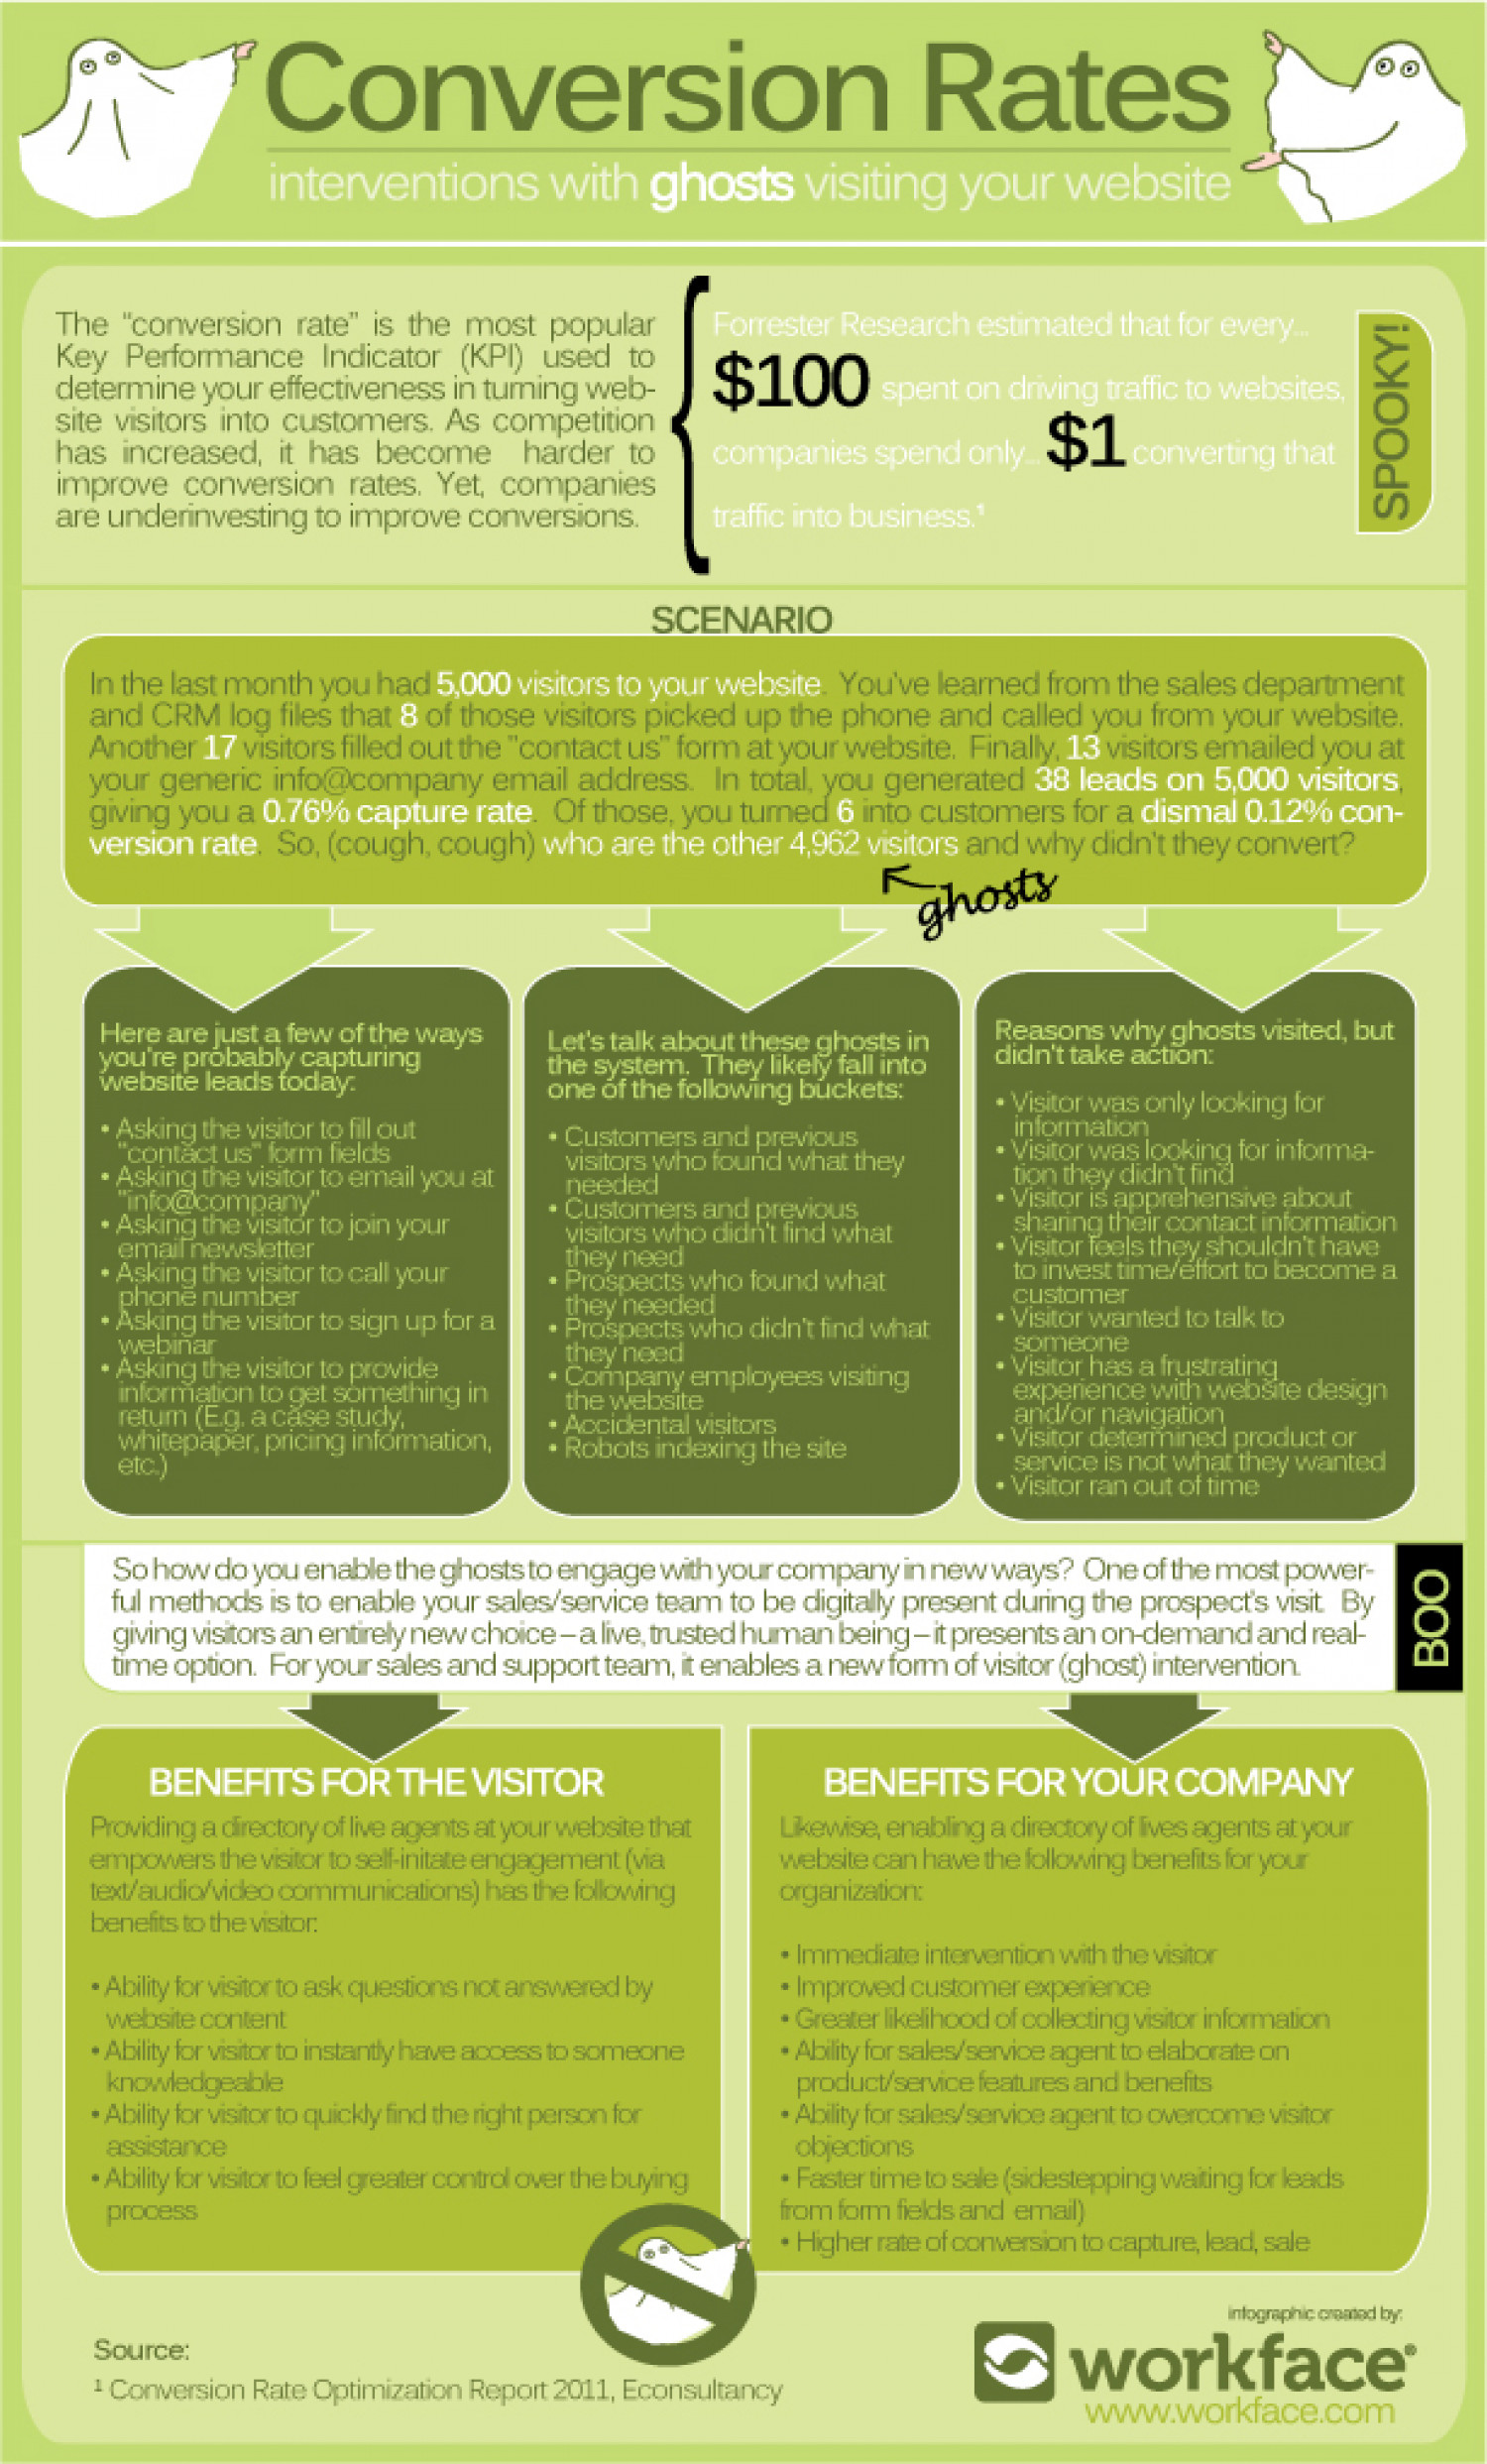 Conversion Rates: Interventions with Ghosts Visiting Your Website Infographic